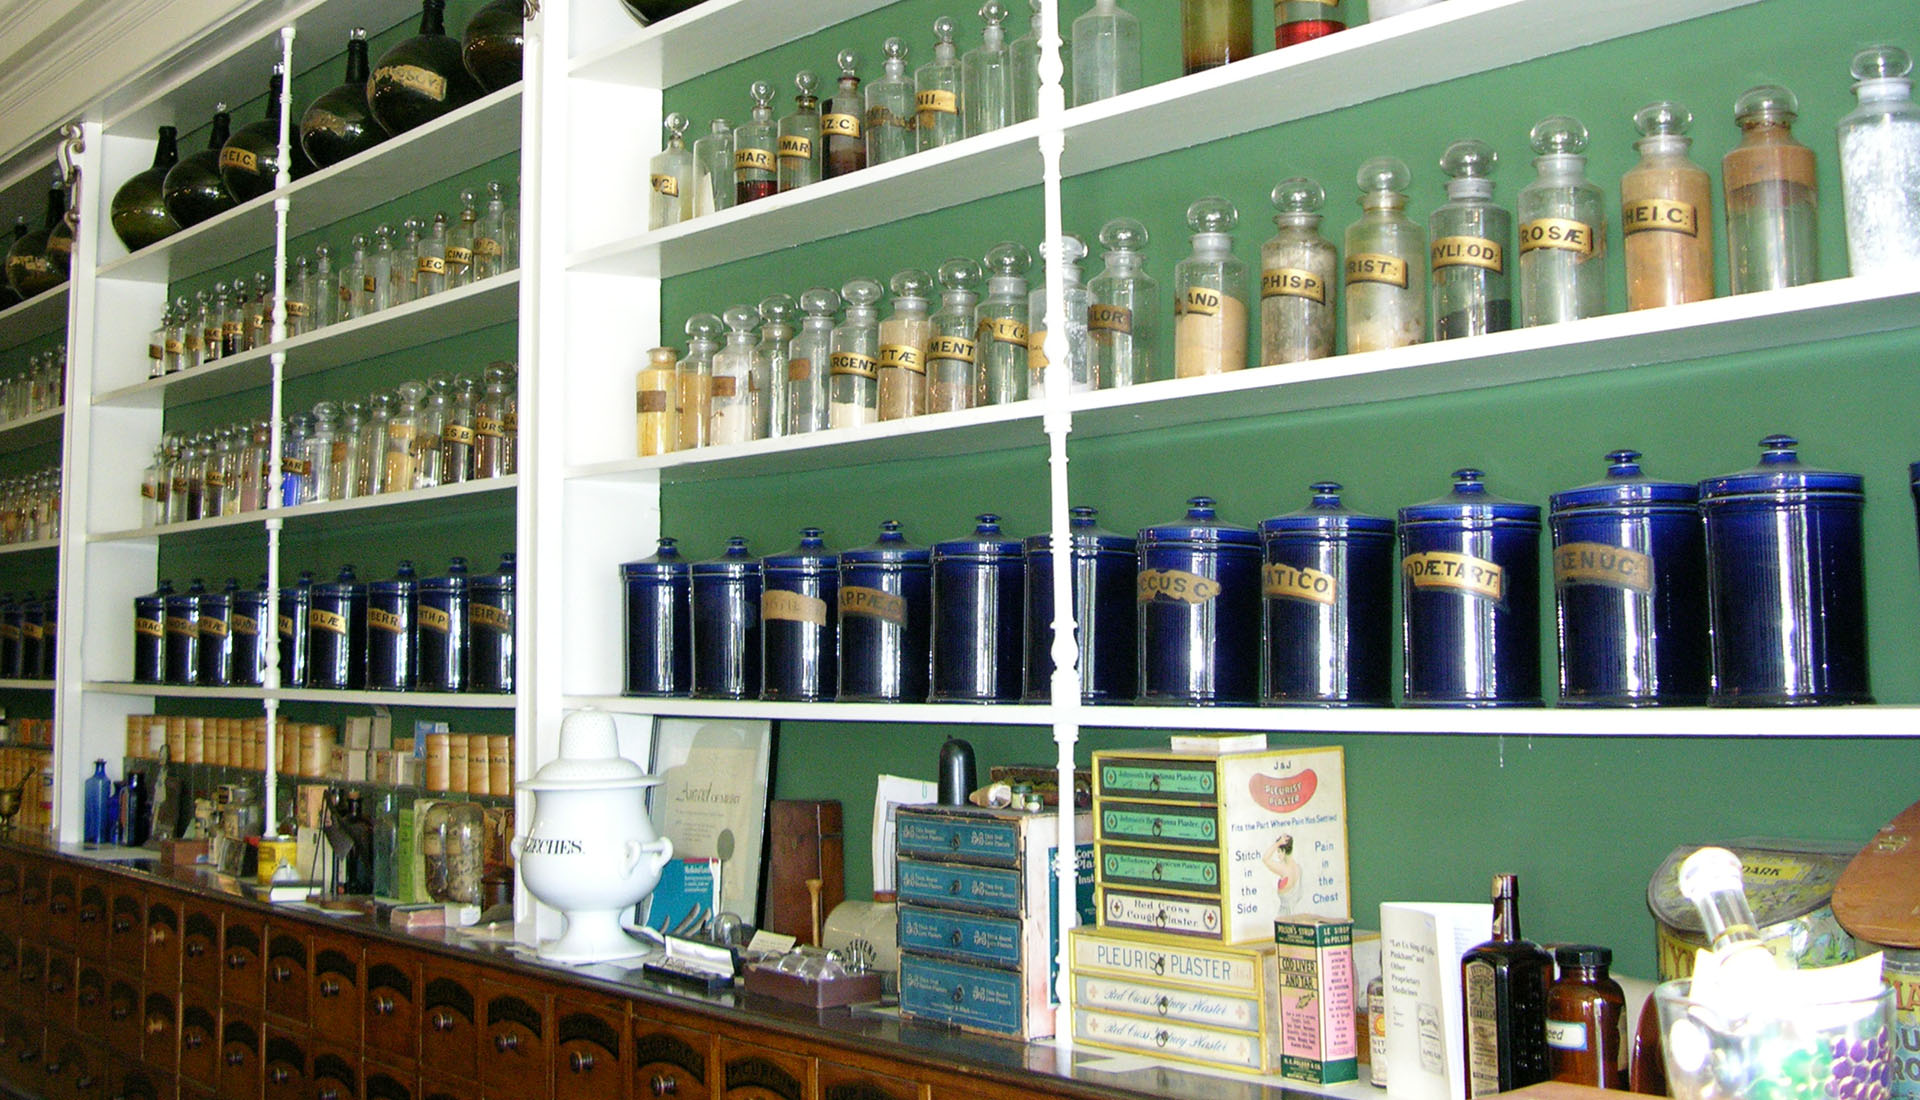 Inside the Niagara Apothecary, Niagara-on-the-Lake